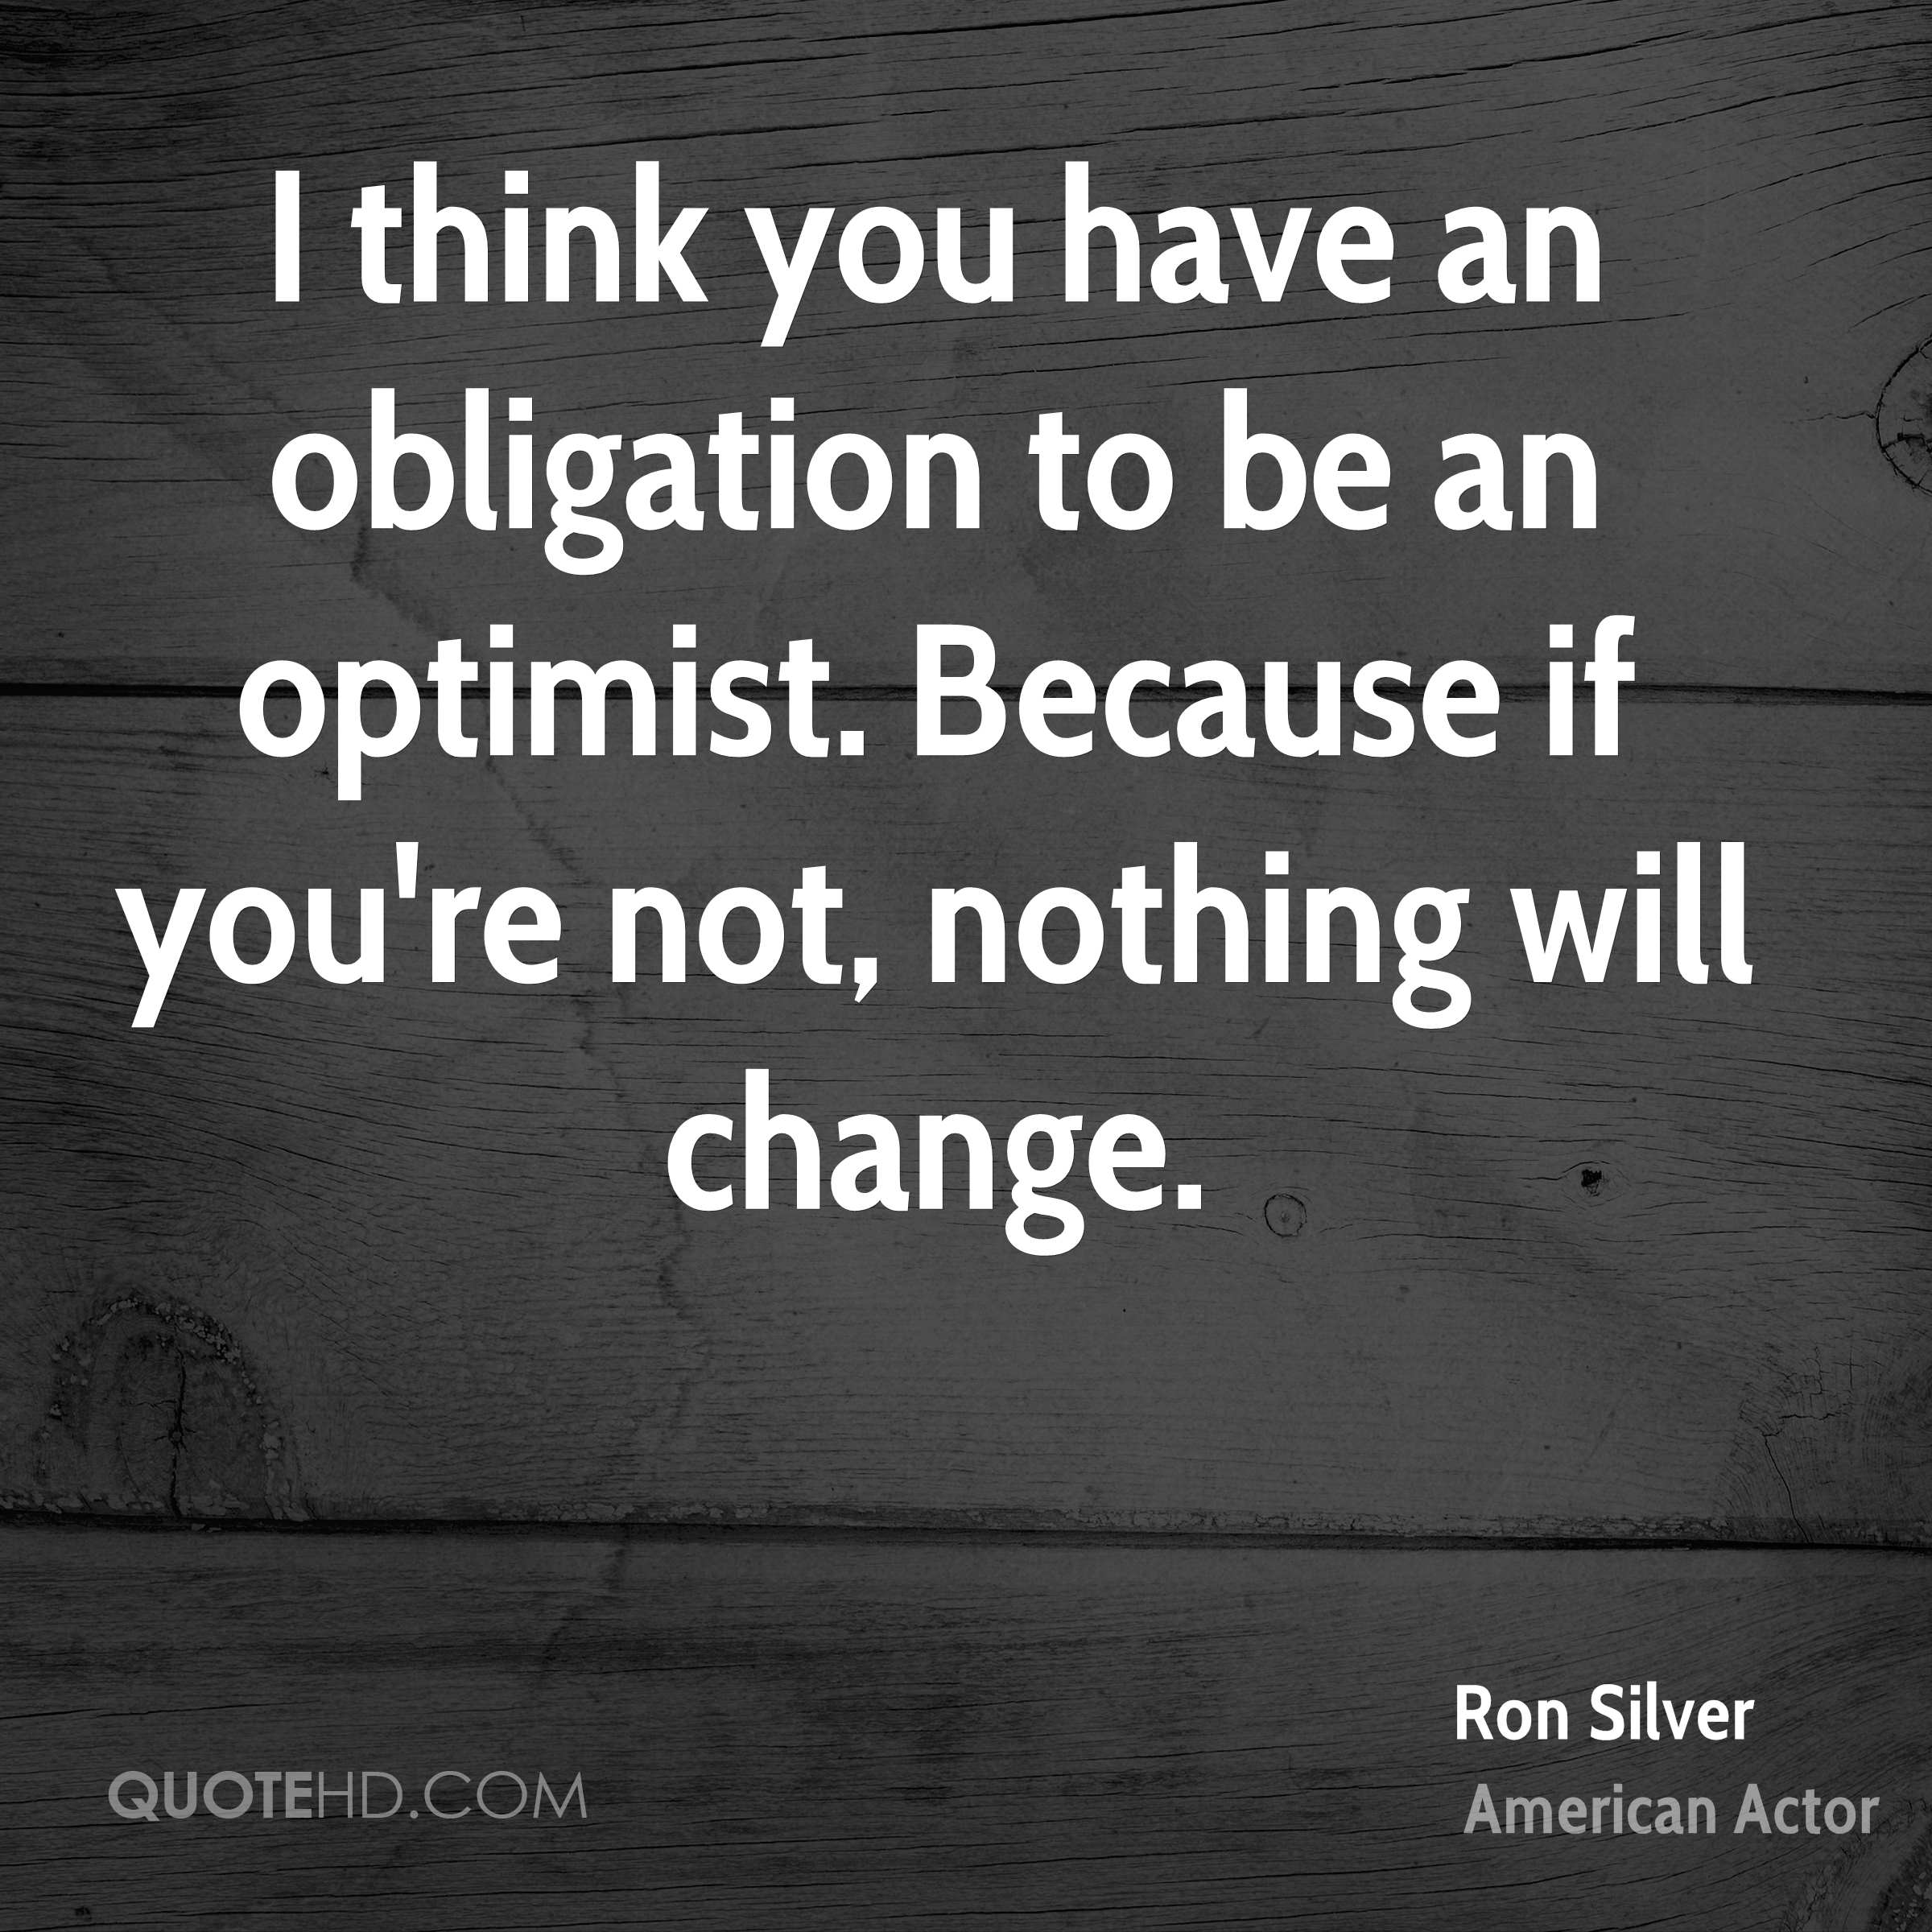 I think you have an obligation to be an optimist. Because if you're not, nothing will change.